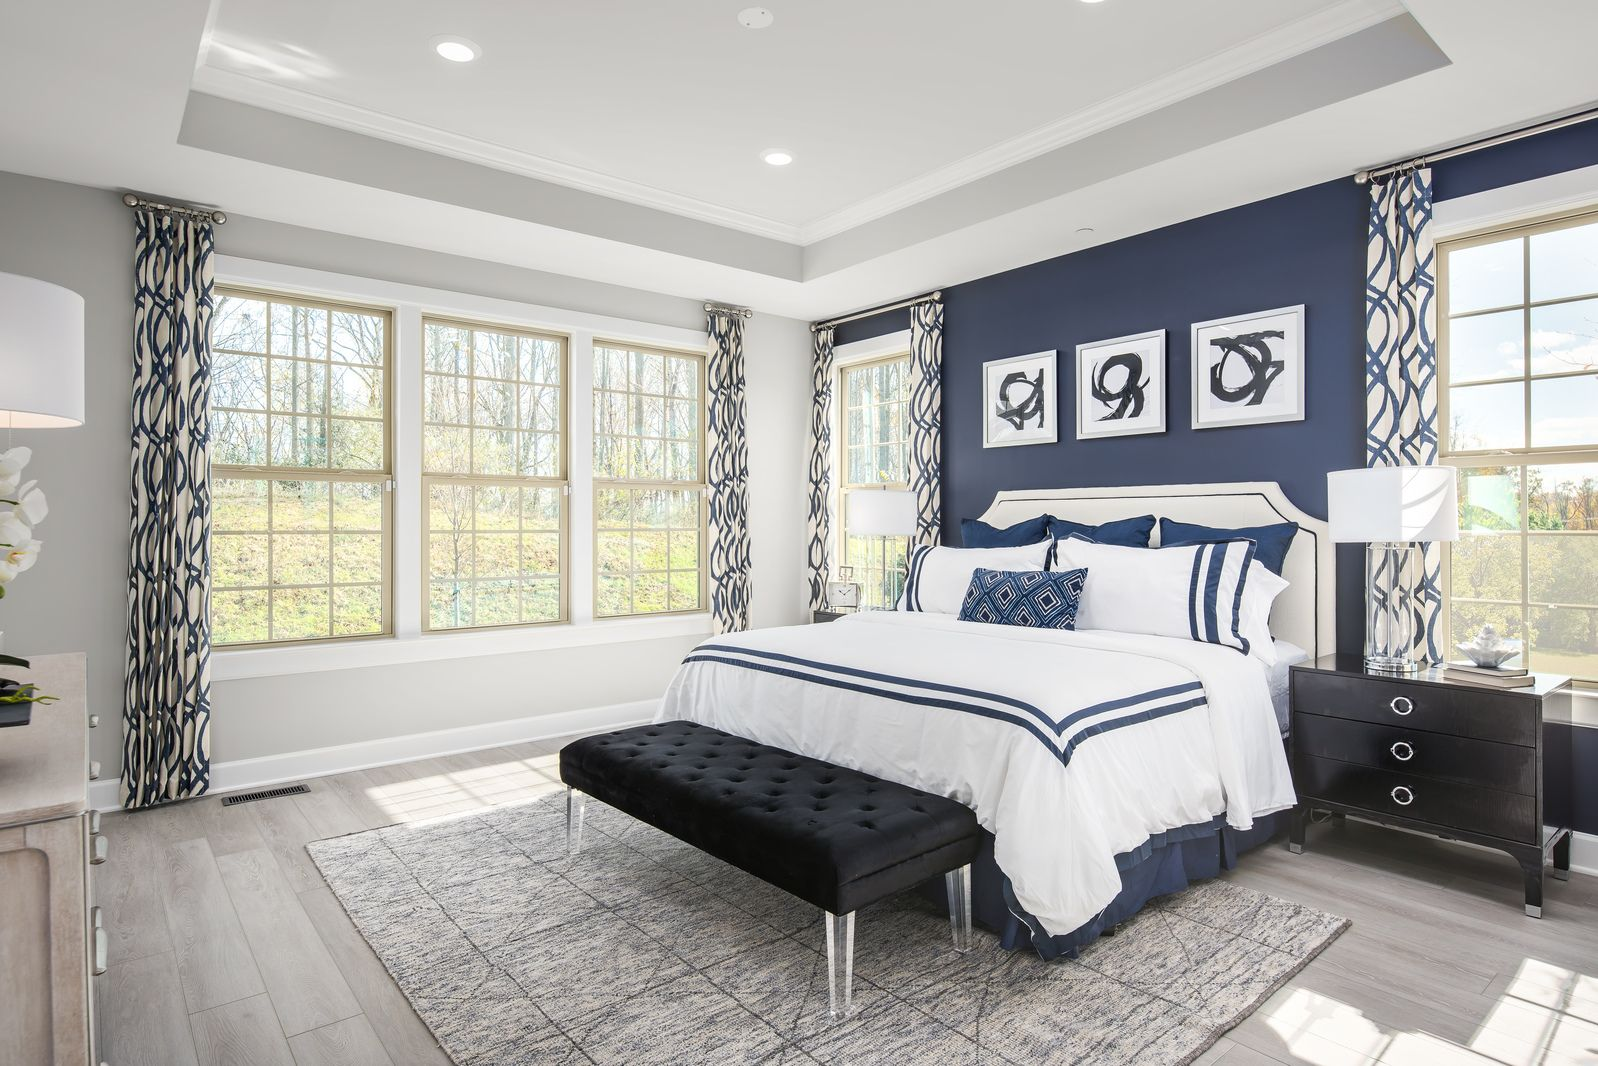 Bedroom featured in the Albright By HeartlandHomes in Pittsburgh, PA